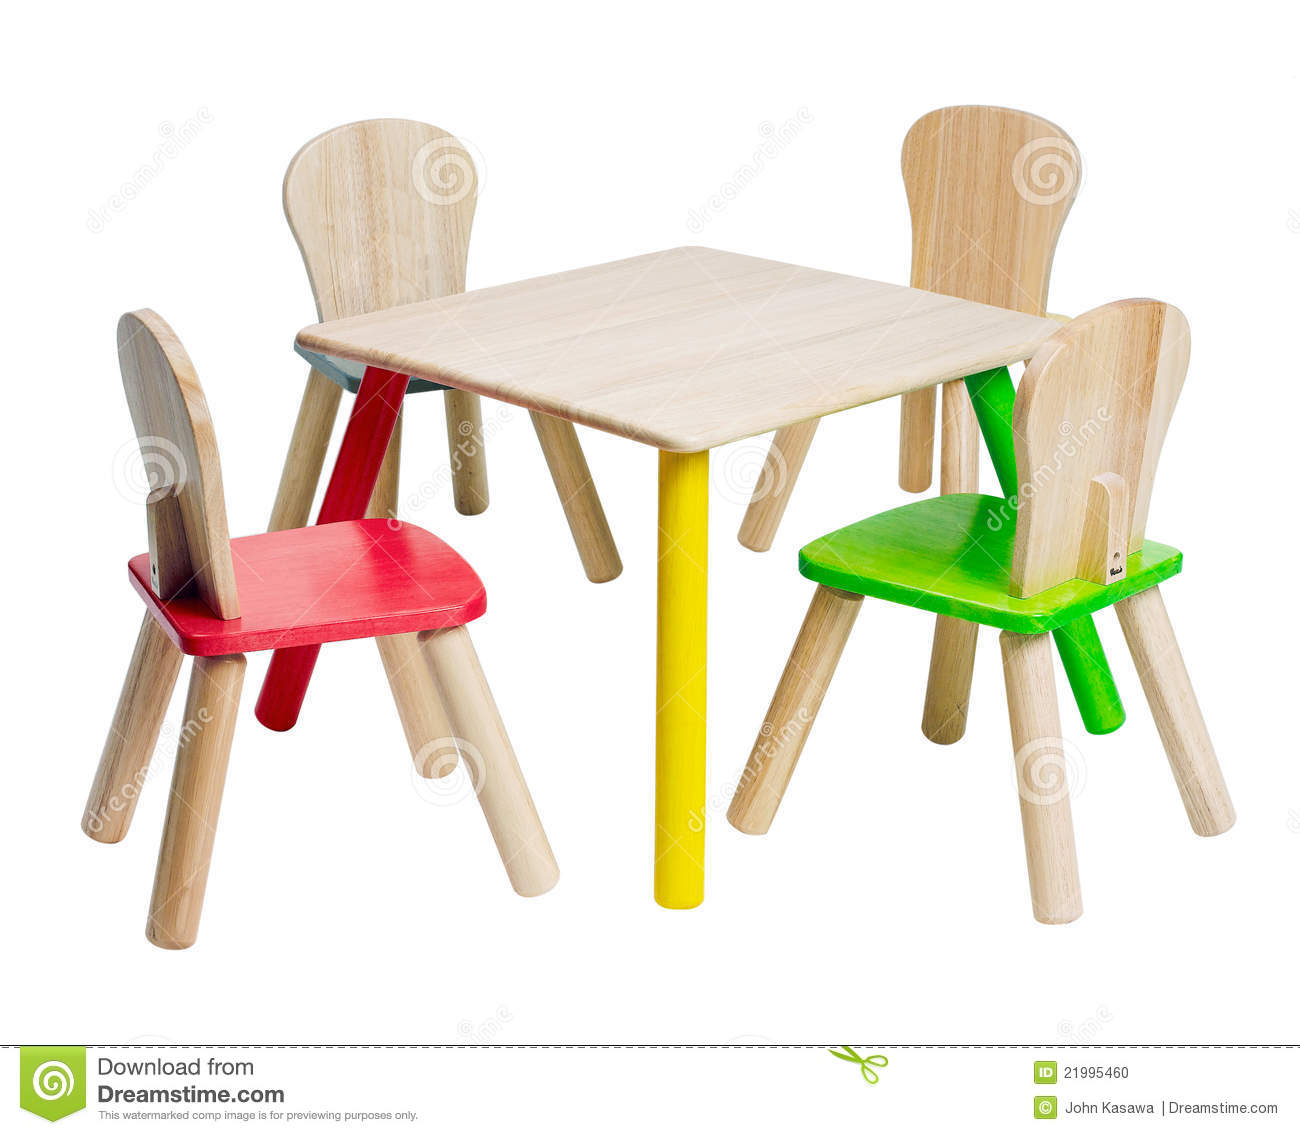 Childrens Wooden Table And Chairs Wooden Table And Chairs Toys For Kid Stock Photo Image Of Cube